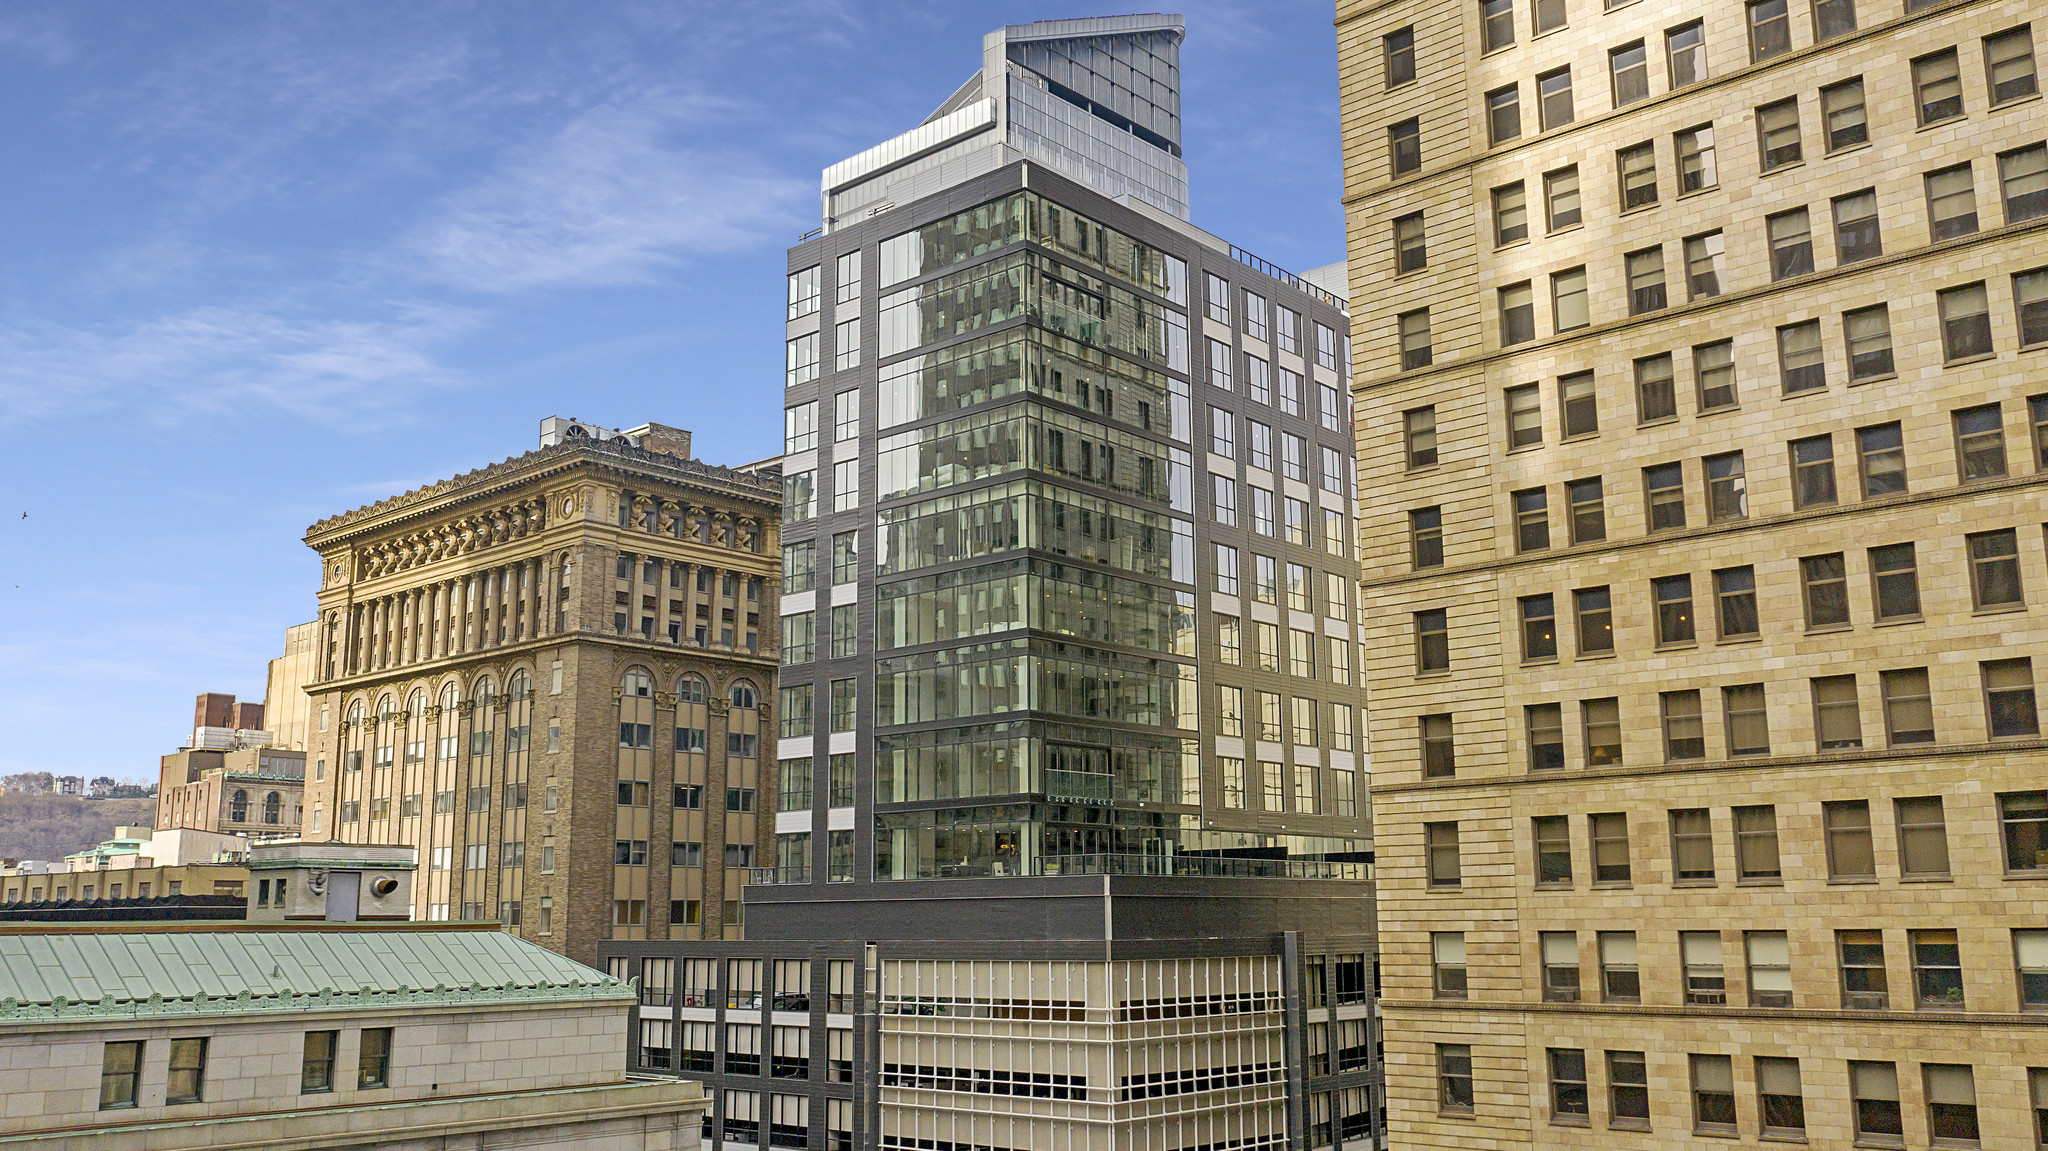 1-Story Condo In Downtown Pittsburgh